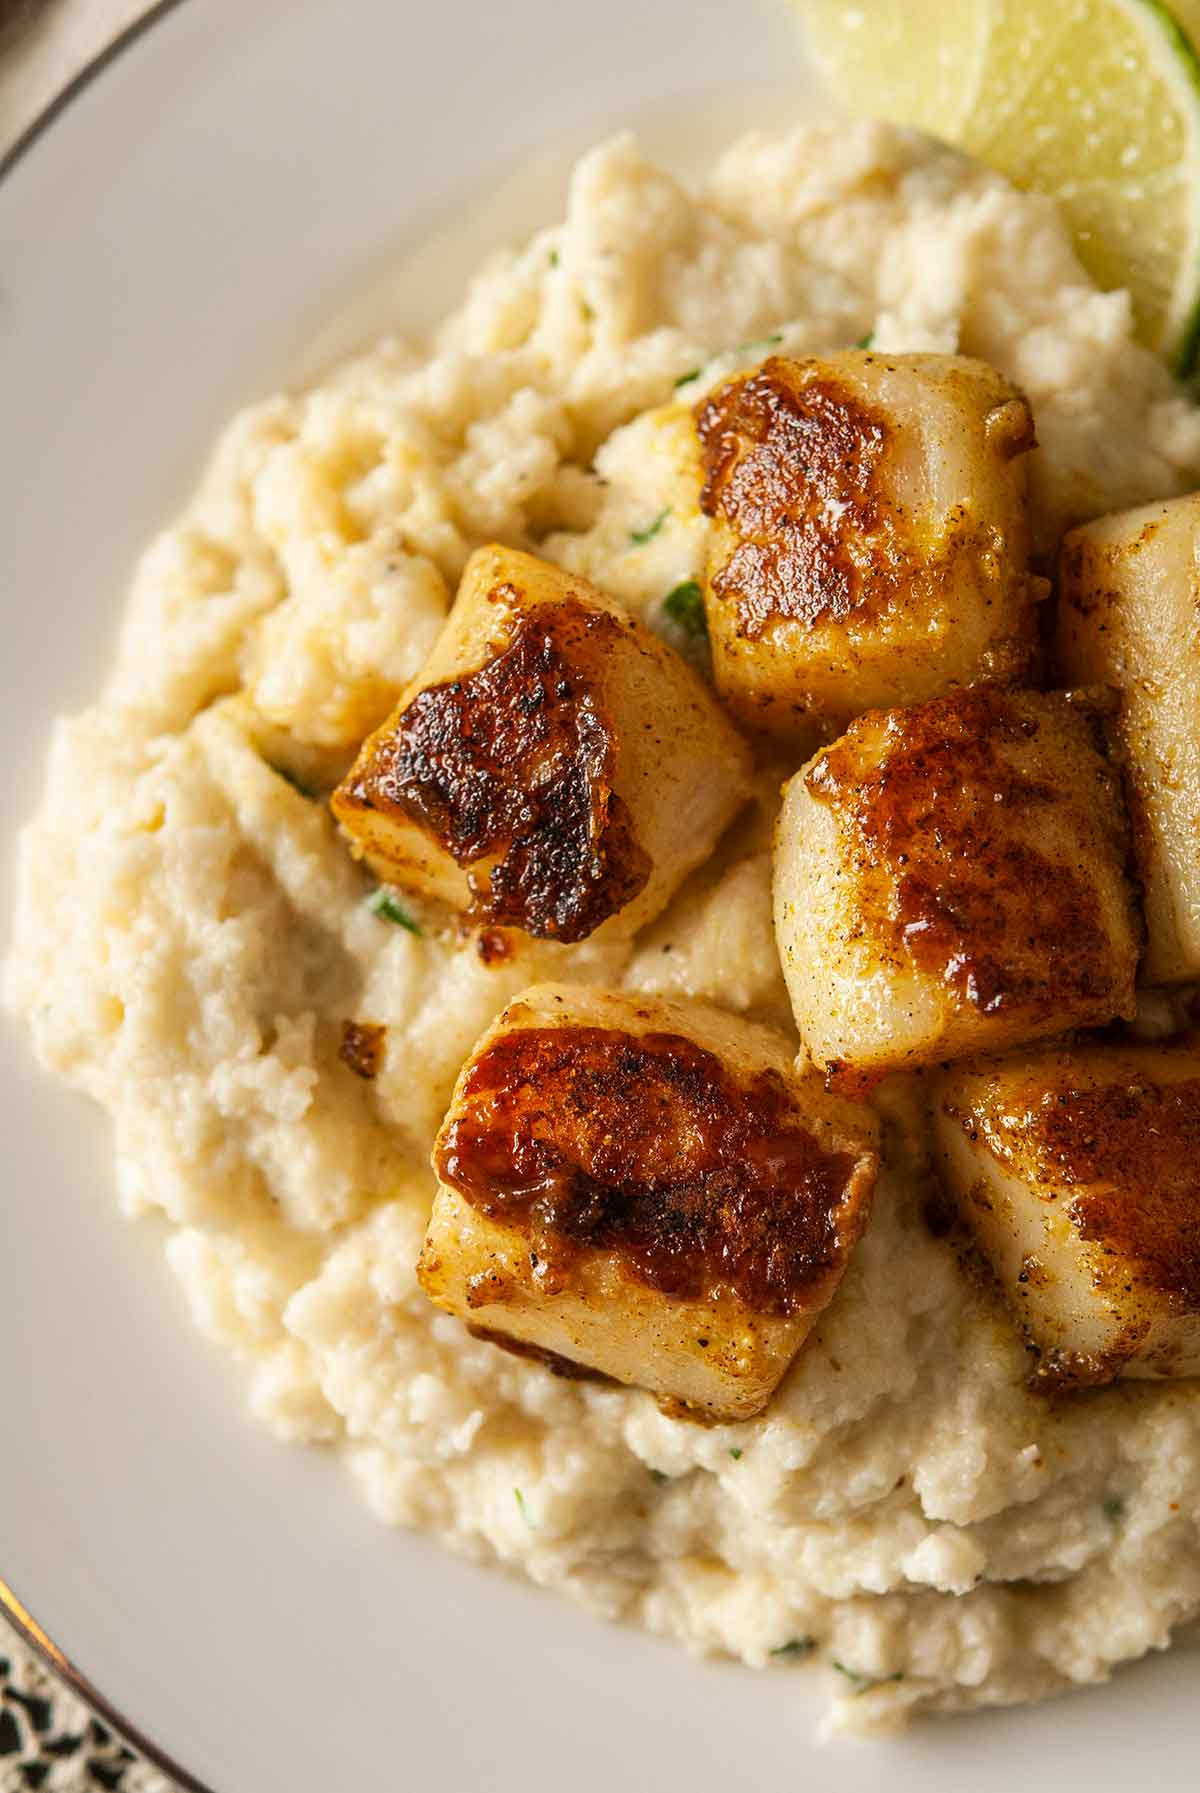 6 curry-seared scallops on a plate with mashed cauliflower.